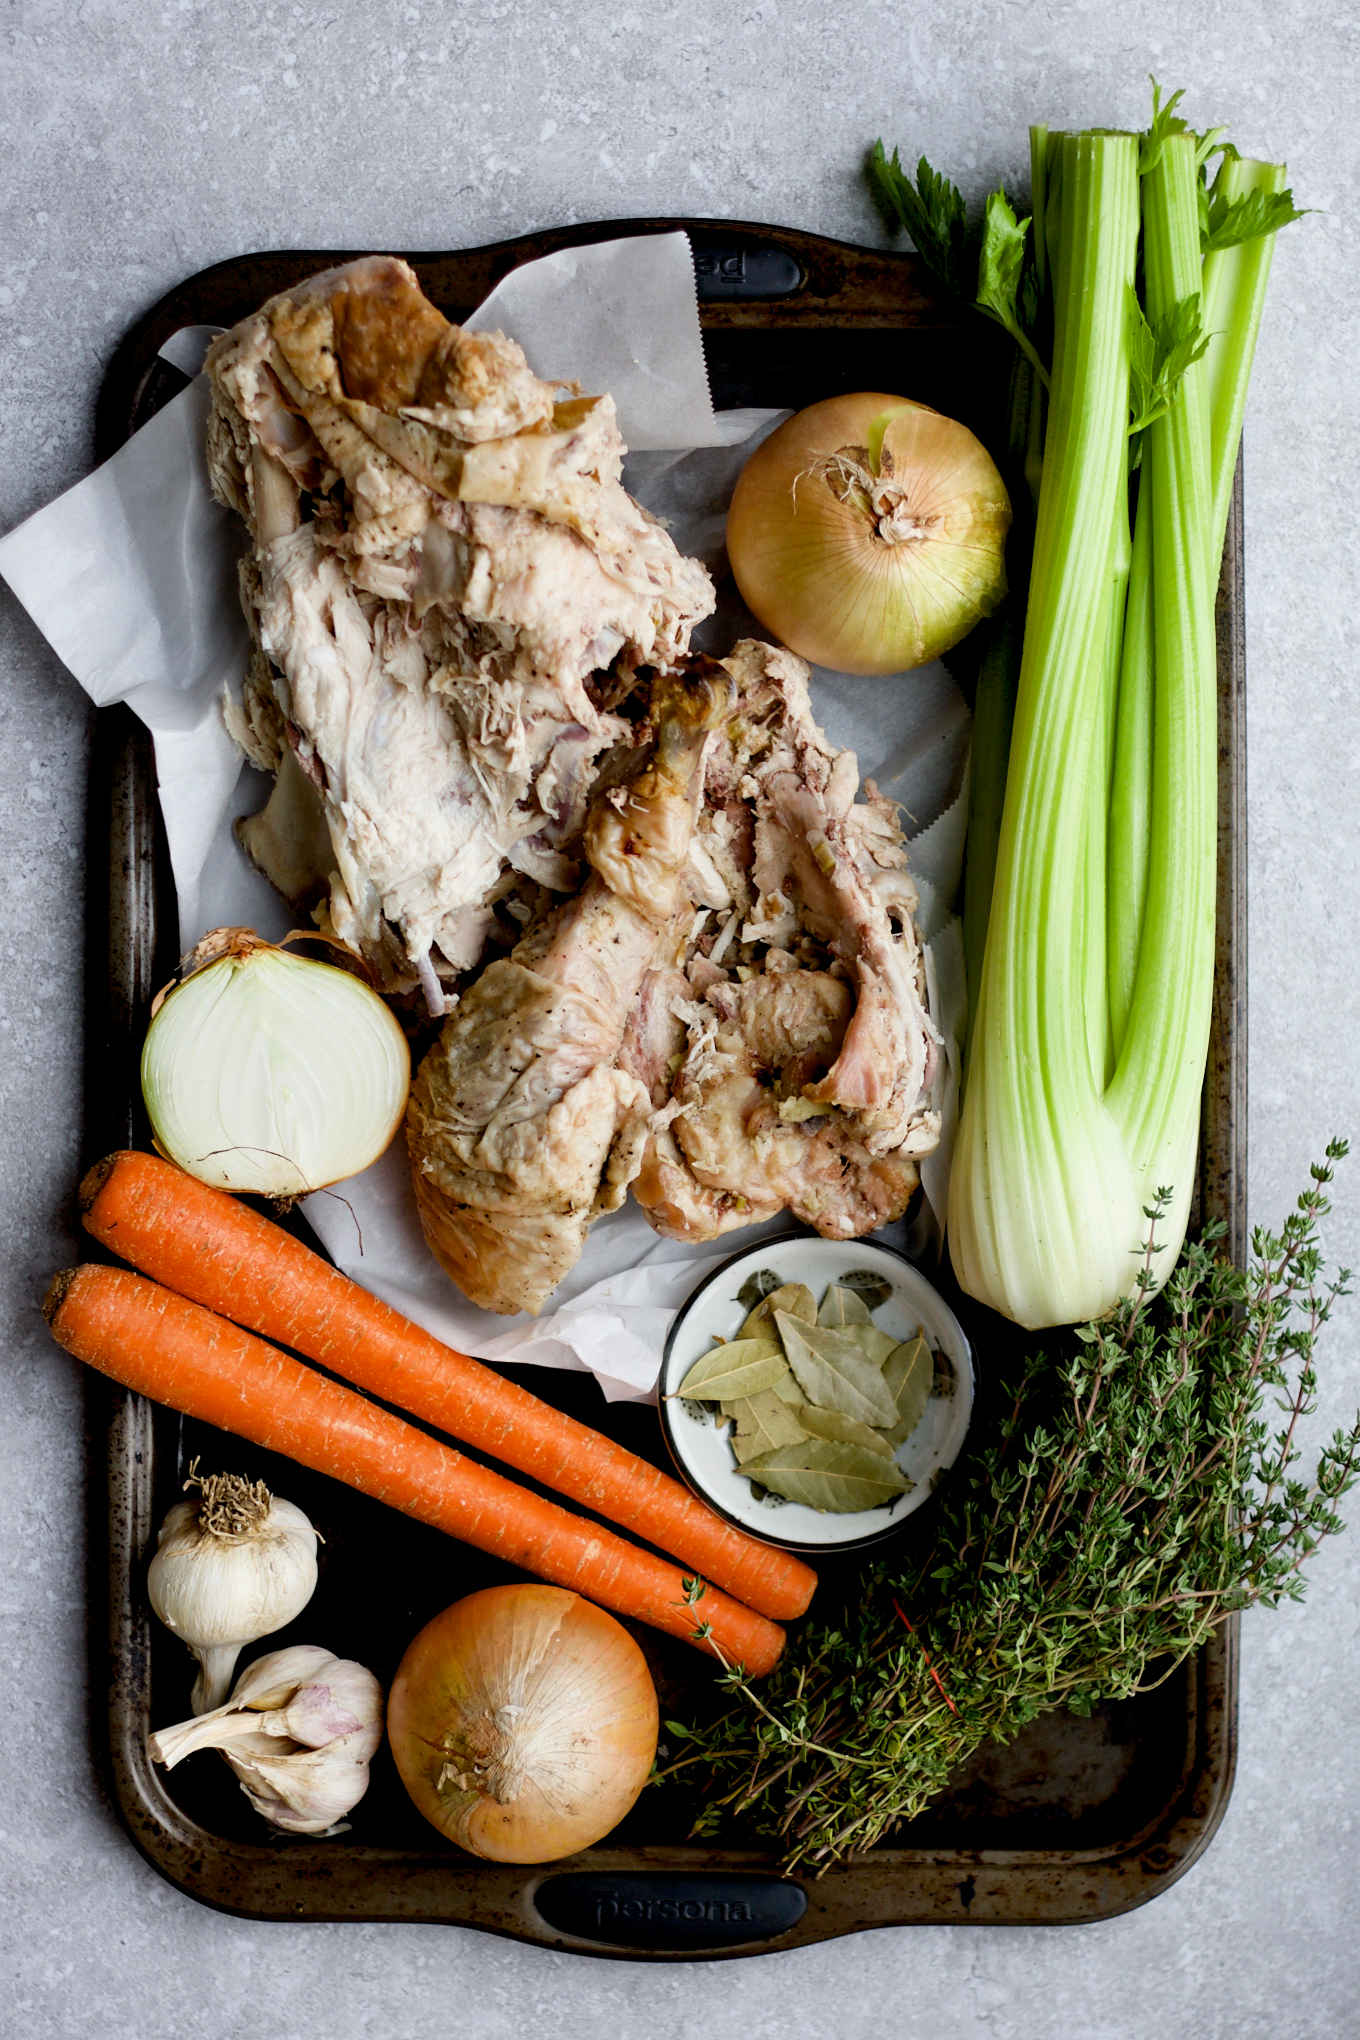 Ingredients for turkey carcass broth in a tray: roasted turkey carcass, celery, onion, carrots, garlic, bay leaf, thyme.